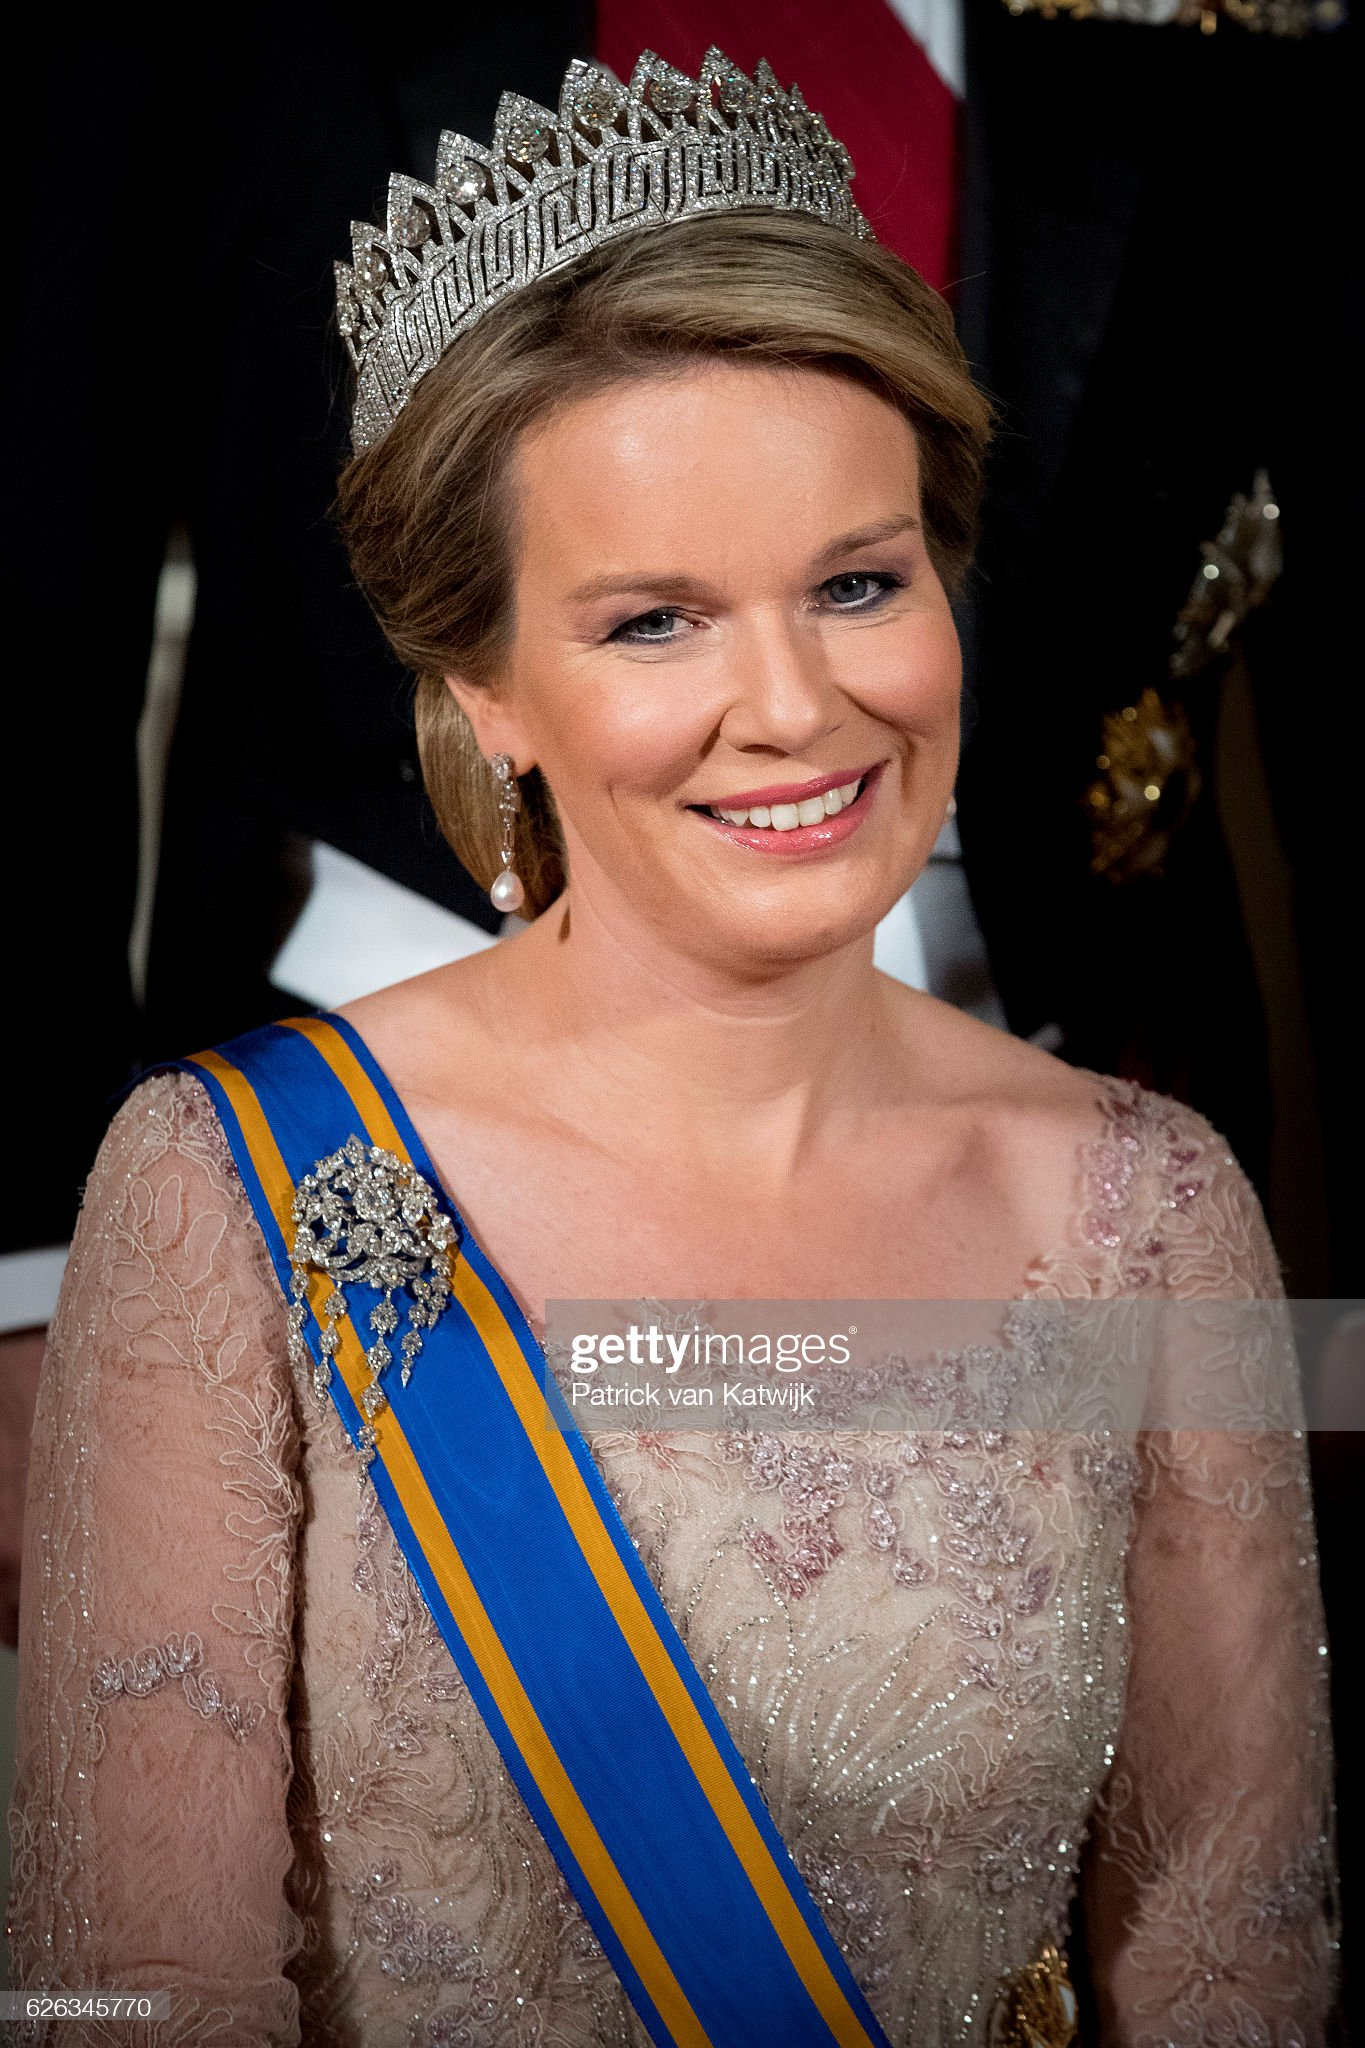 Вечерние наряды Королевы Матильды Queen Mathilde of Belgium and King Philippe of Belgium On A 3 Day Official Visit In Holland : Day One : News Photo